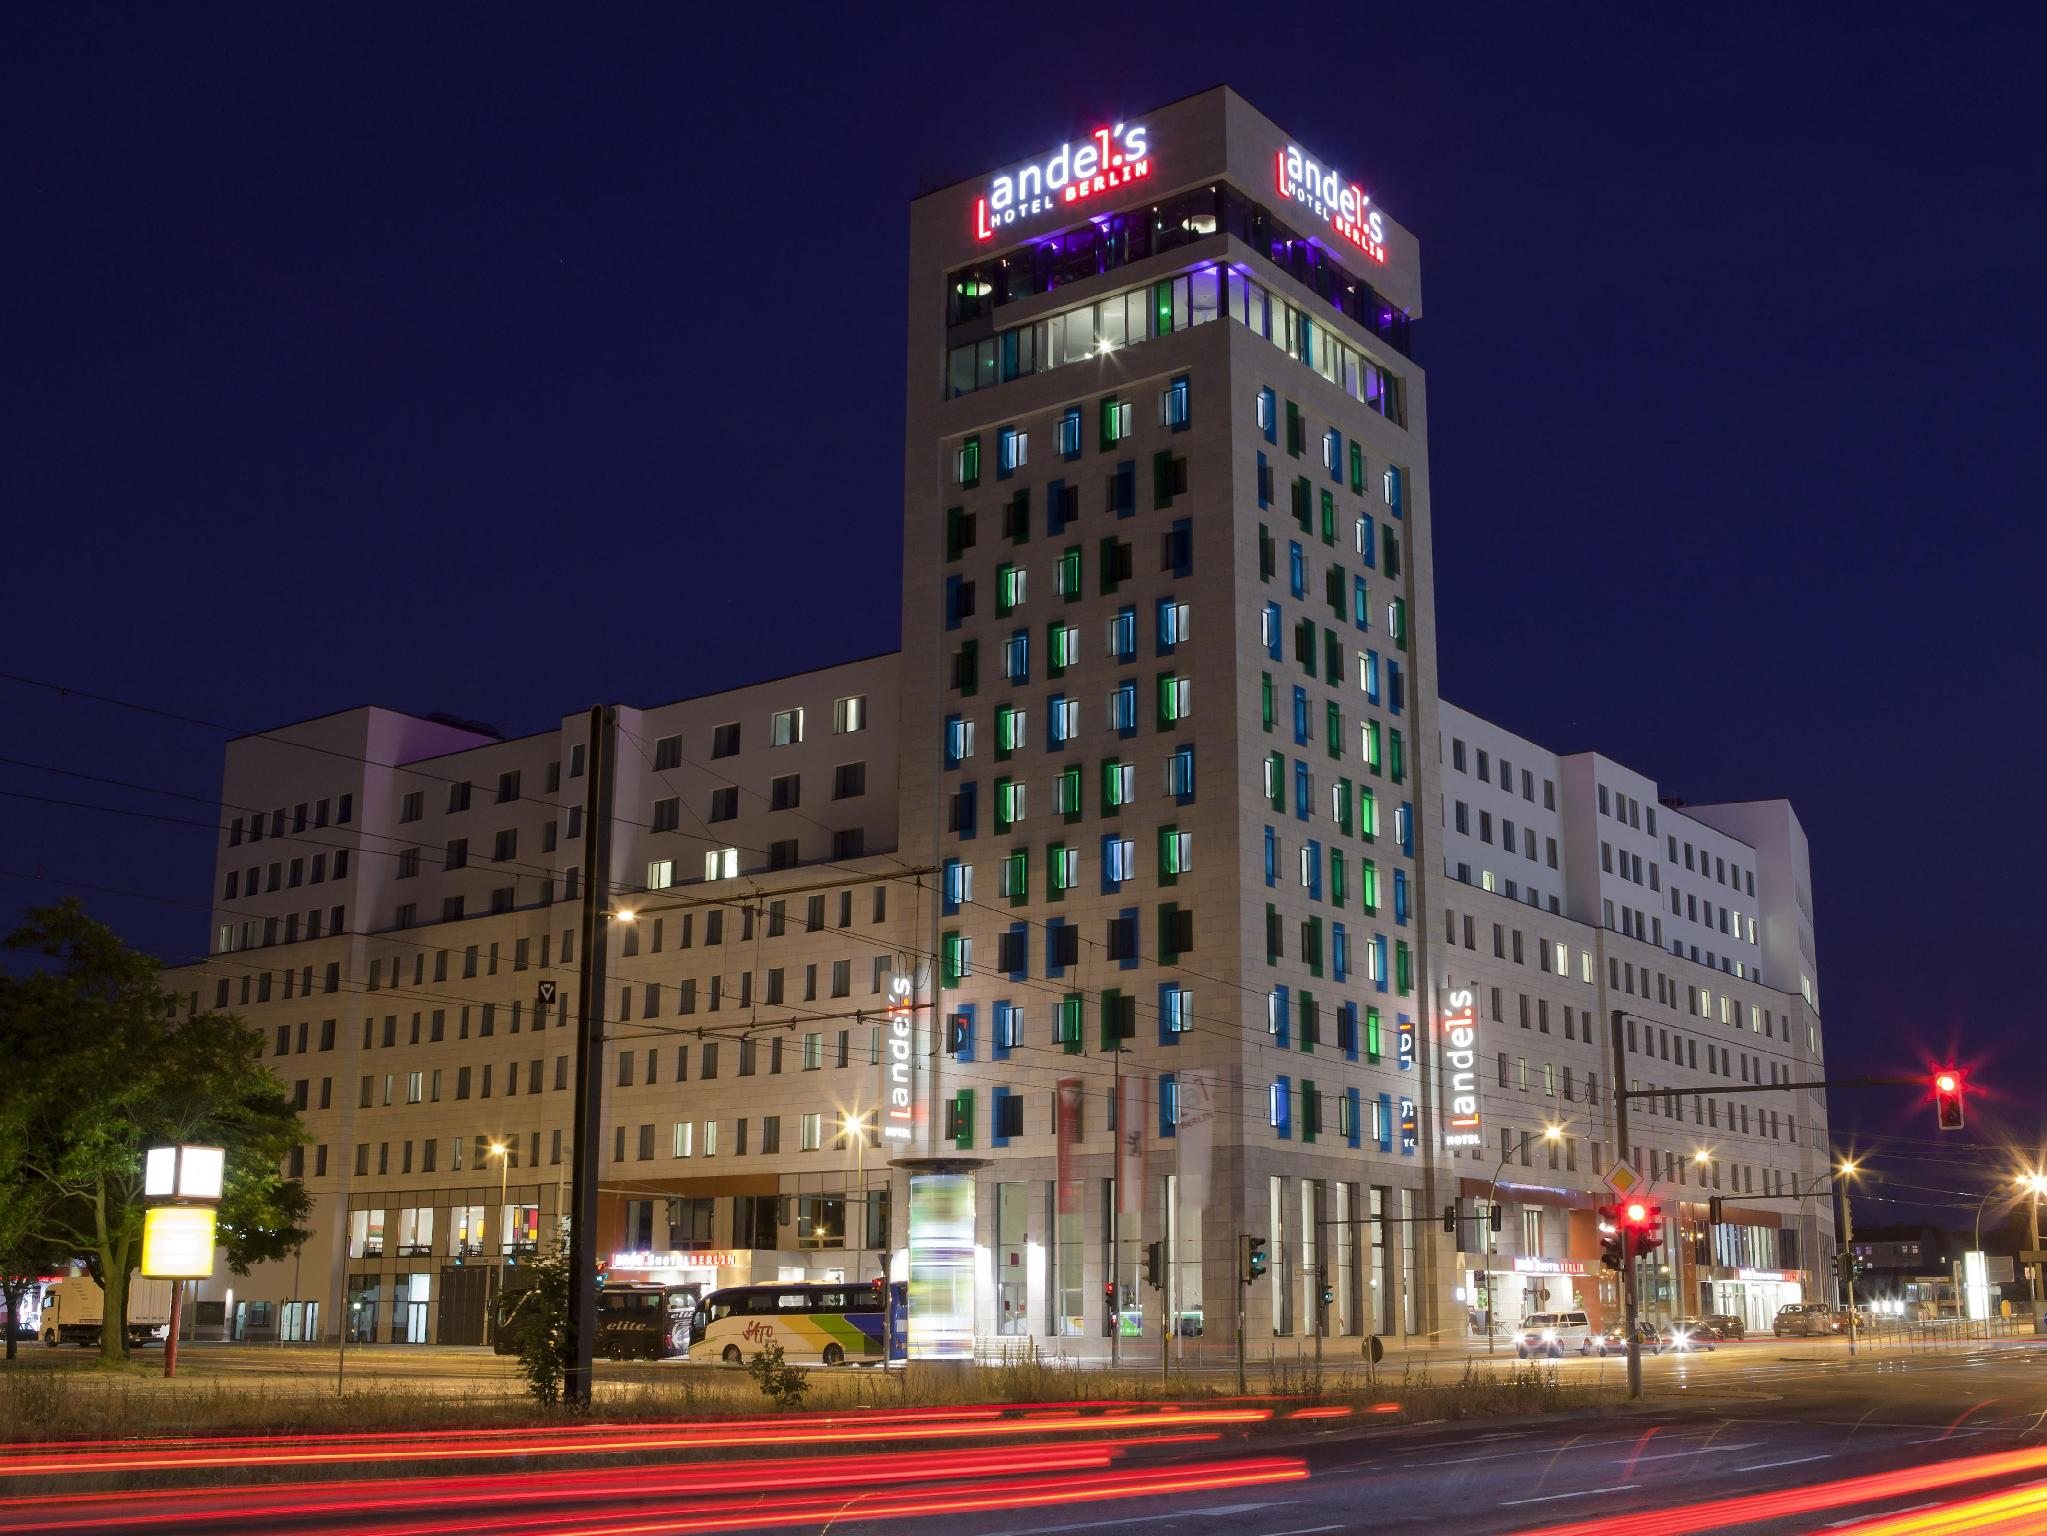 andel's Hotel Berlin, managed by Vienna International Hotels and Resorts Berlim